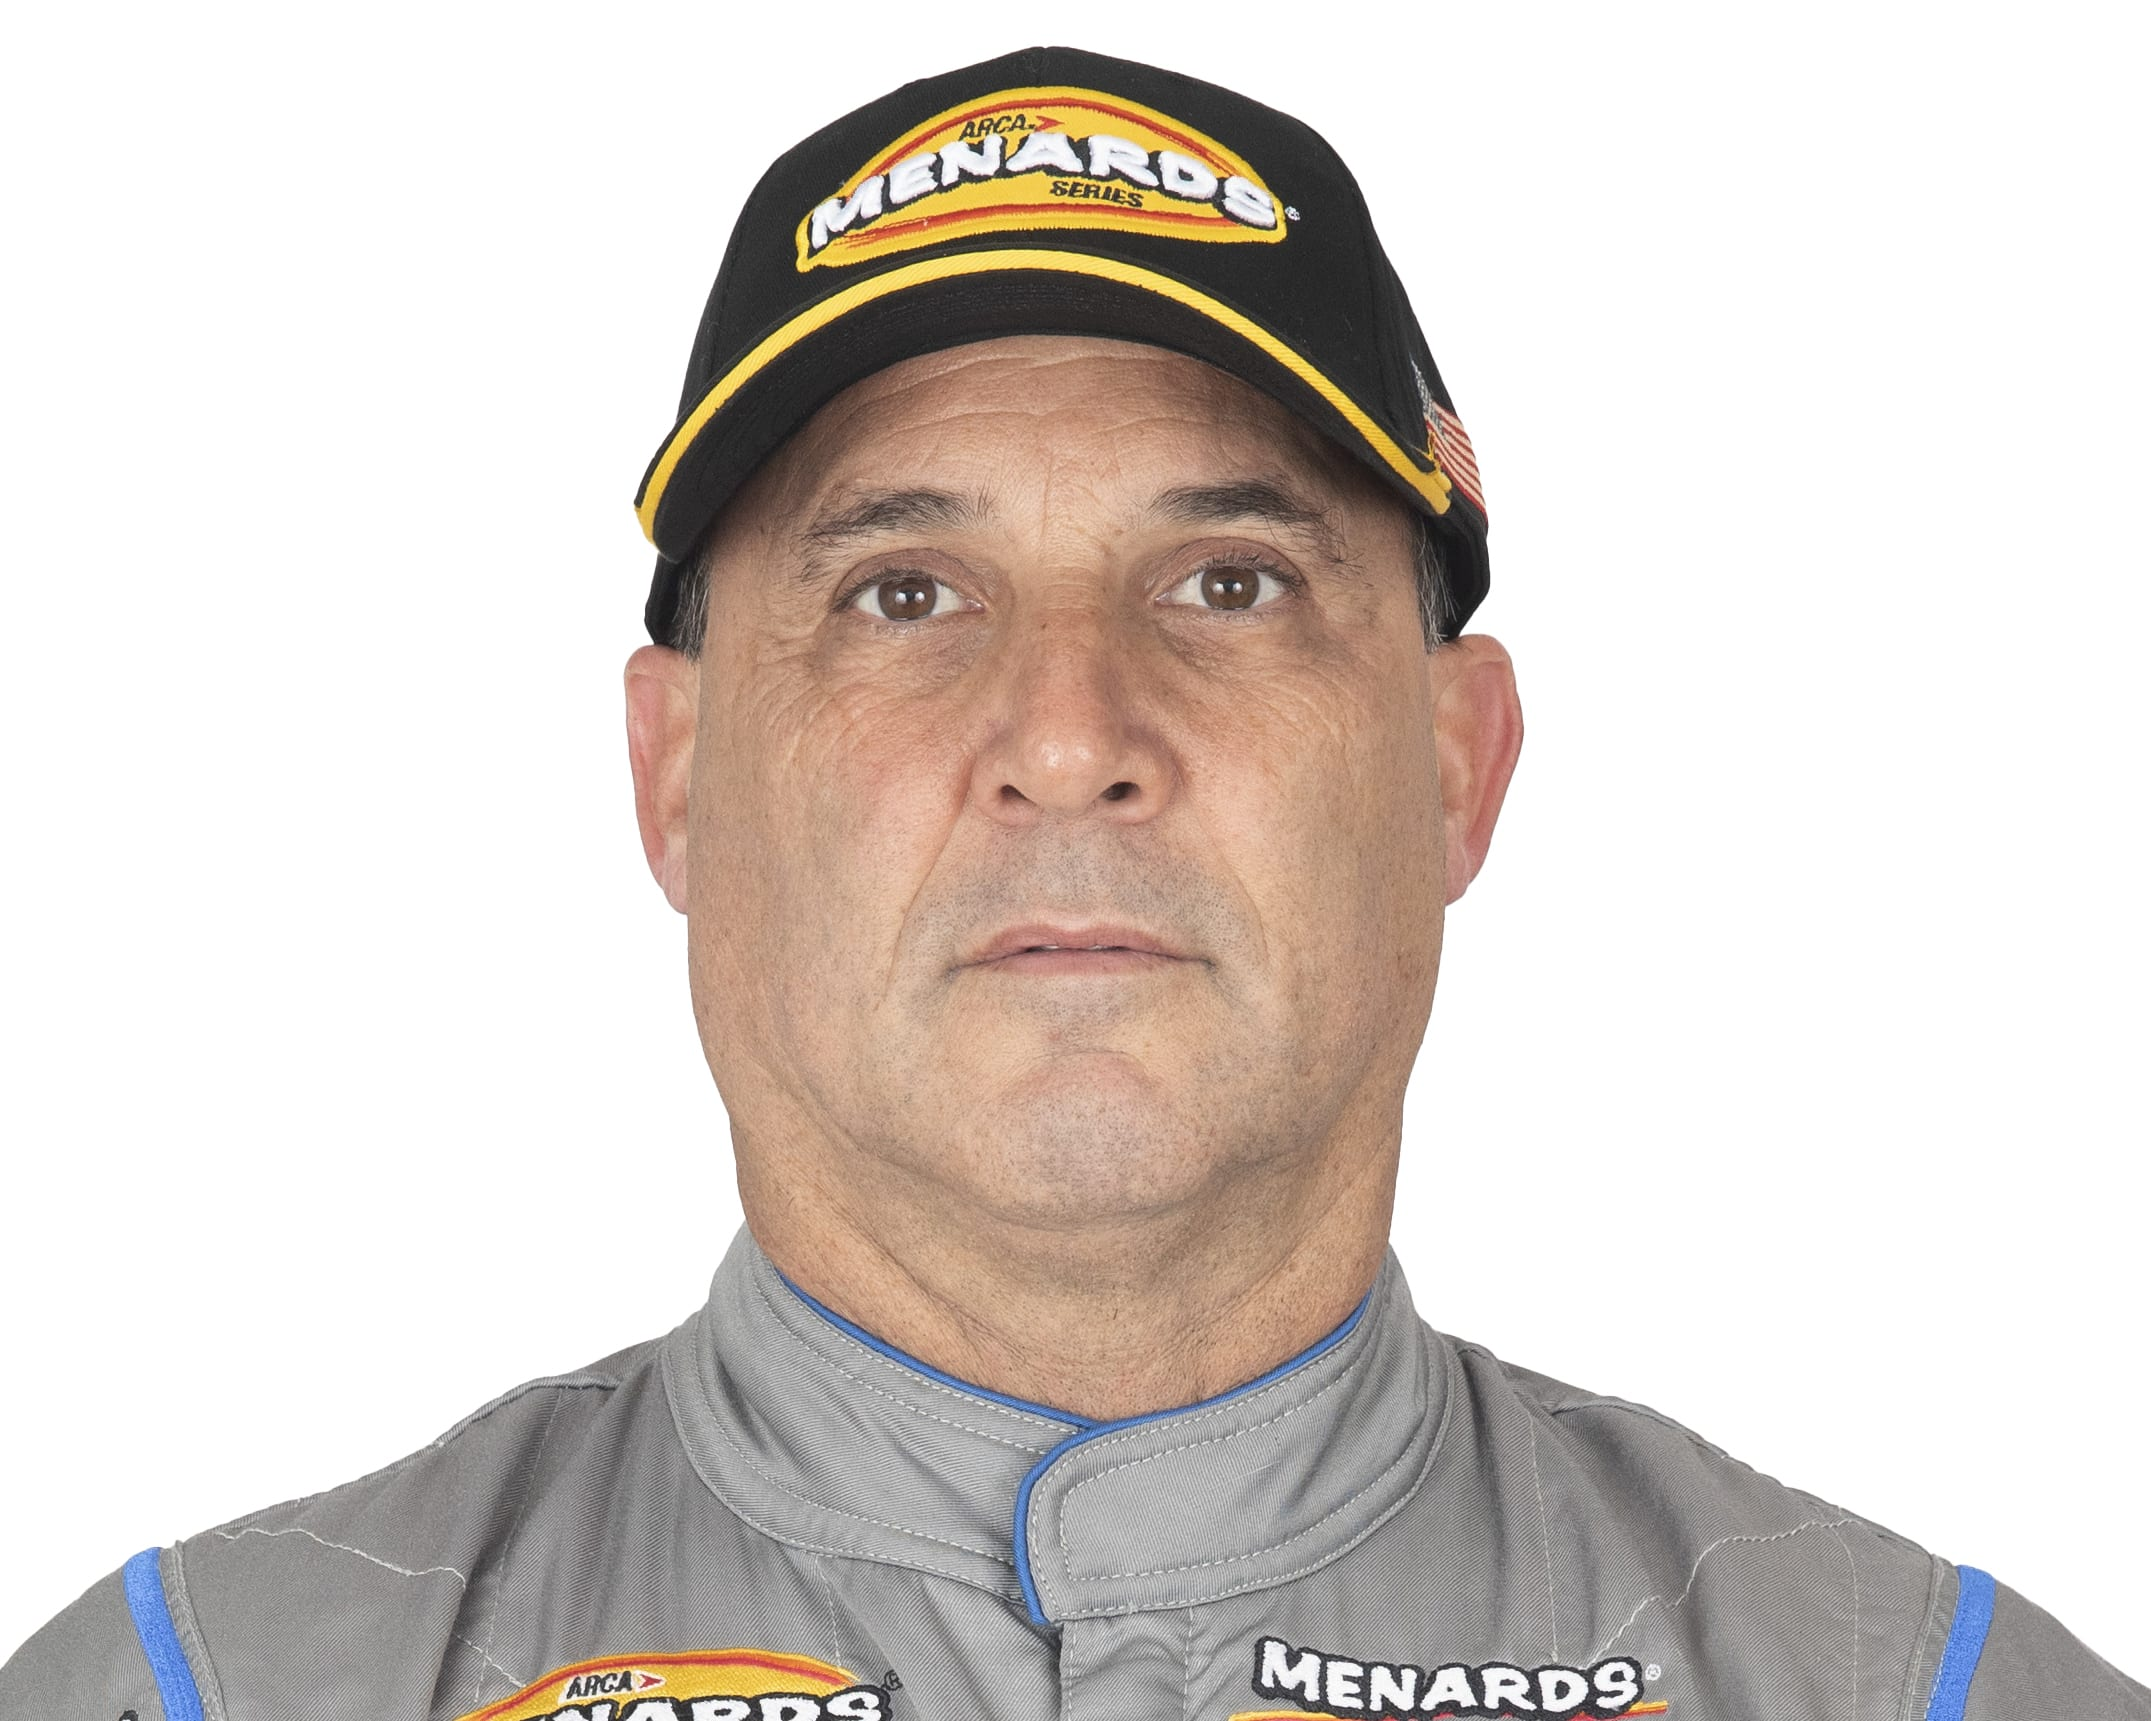 Todd Souza, driver of the #13 Central Coast Cabinets Ford, poses for a portrait before the General Tire 150 for the ARCA Menards Series and ARCA Menards Series West at Phoenix Raceway in Avondale, Arizona, on March 12, 2021. (Adam Glanzman/ARCA Racing)